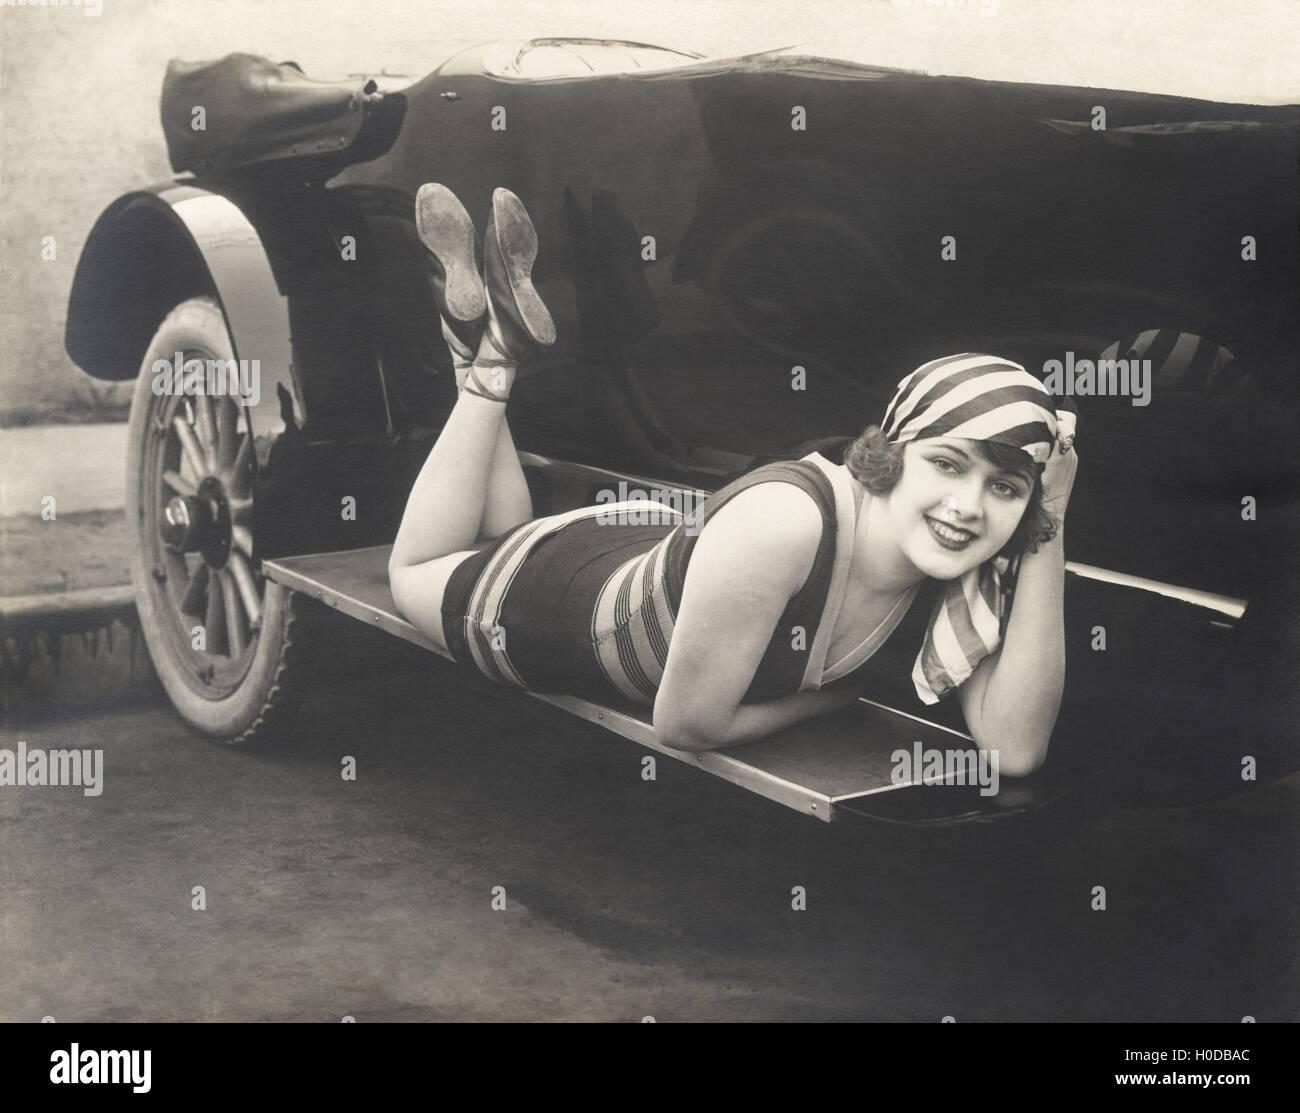 Bathing beauty posing on running board of convertible - Stock Image